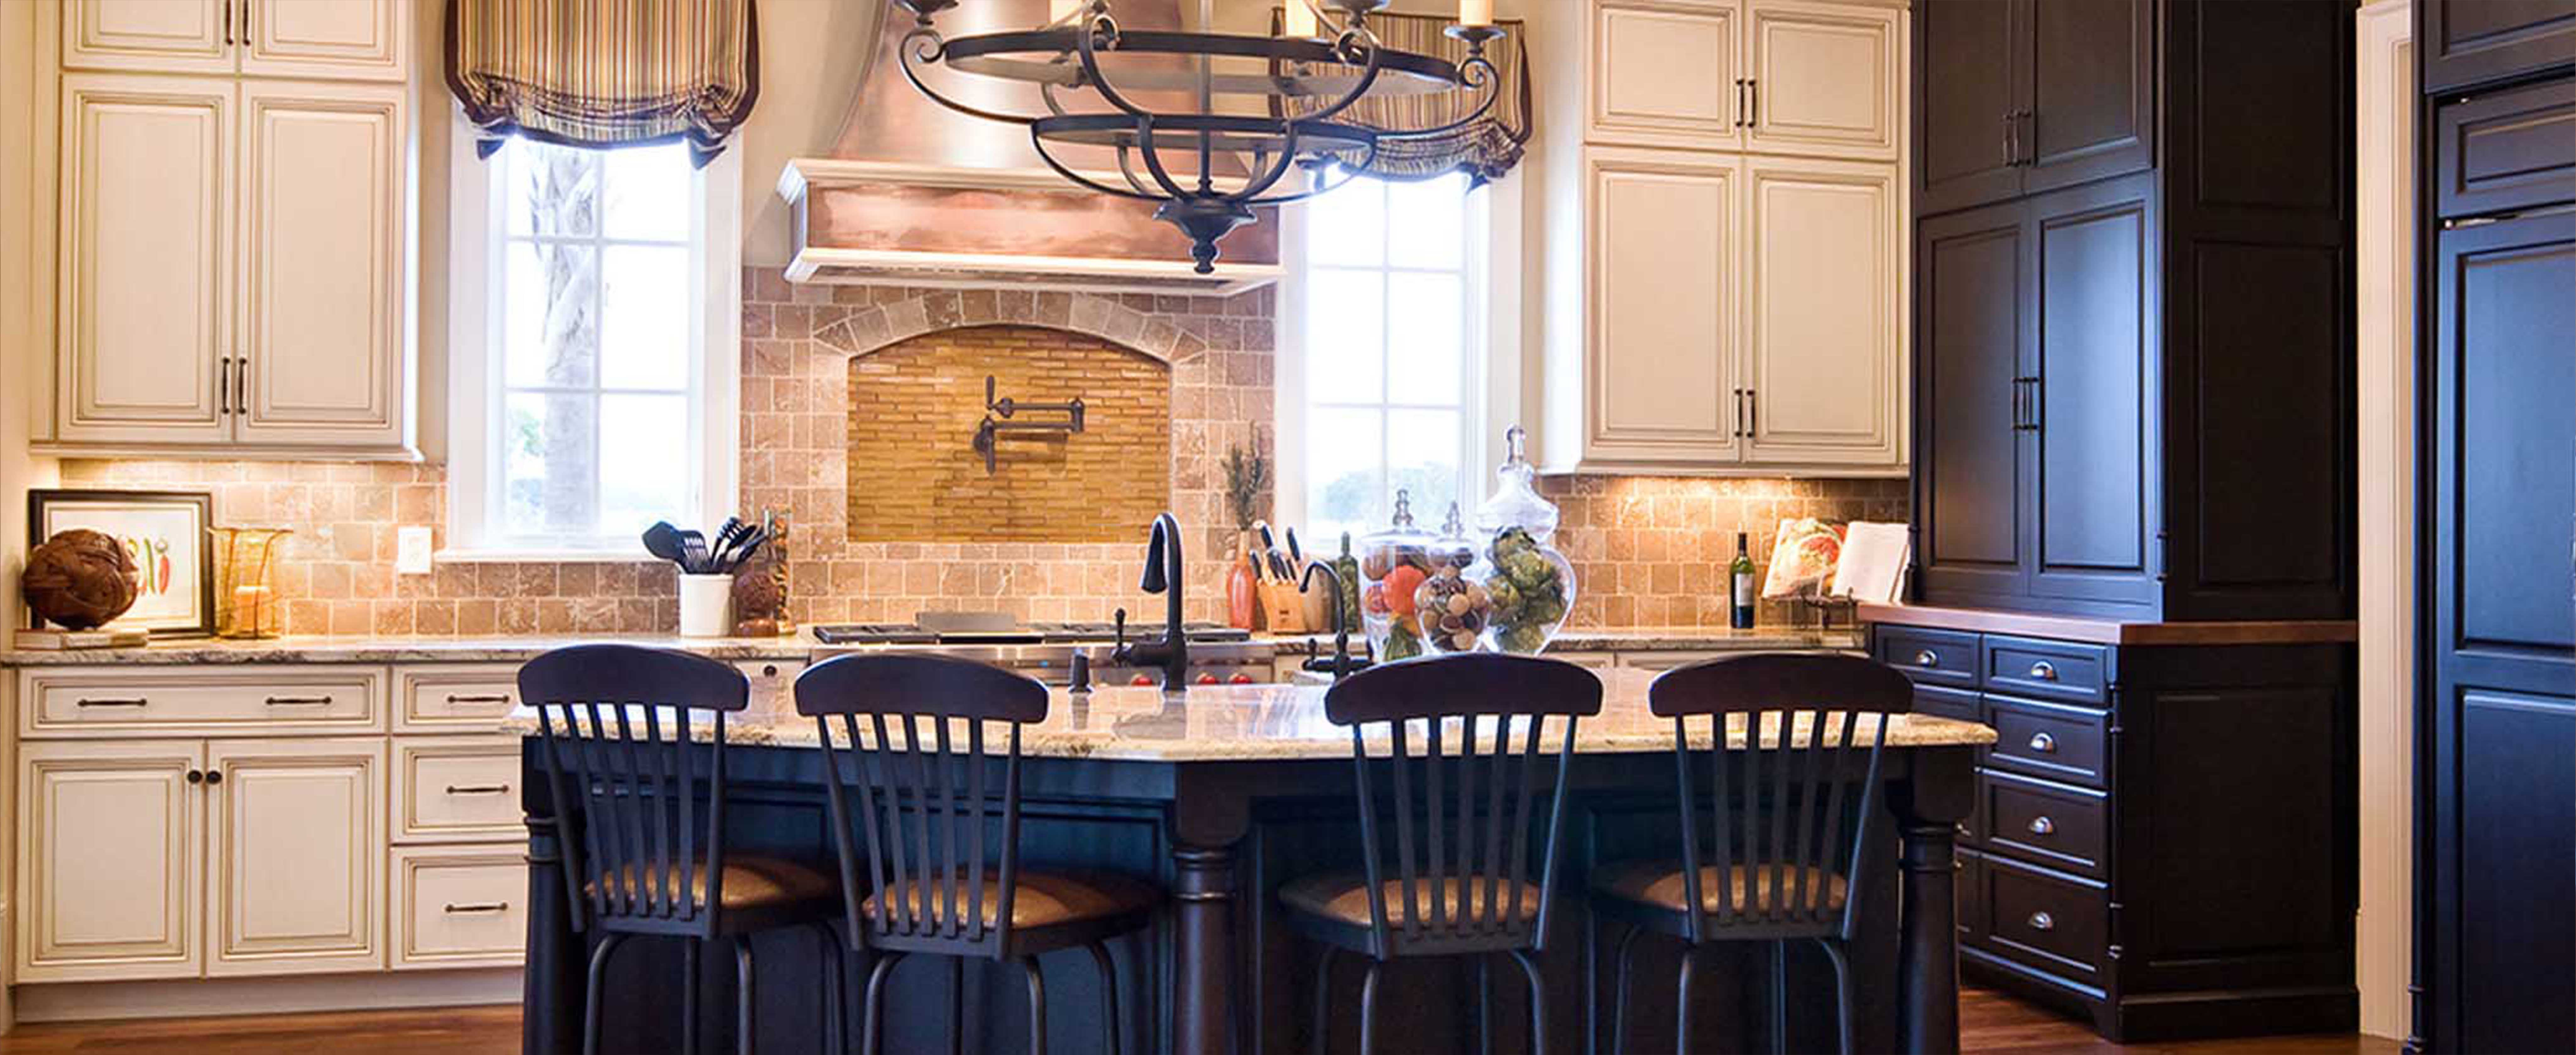 Kitchen, Bath U0026 Home Remodeling Contractors In Palm Harbor | Professional  Kitchen, Bath And Home Remodeling Services In Palm Harbor 34684